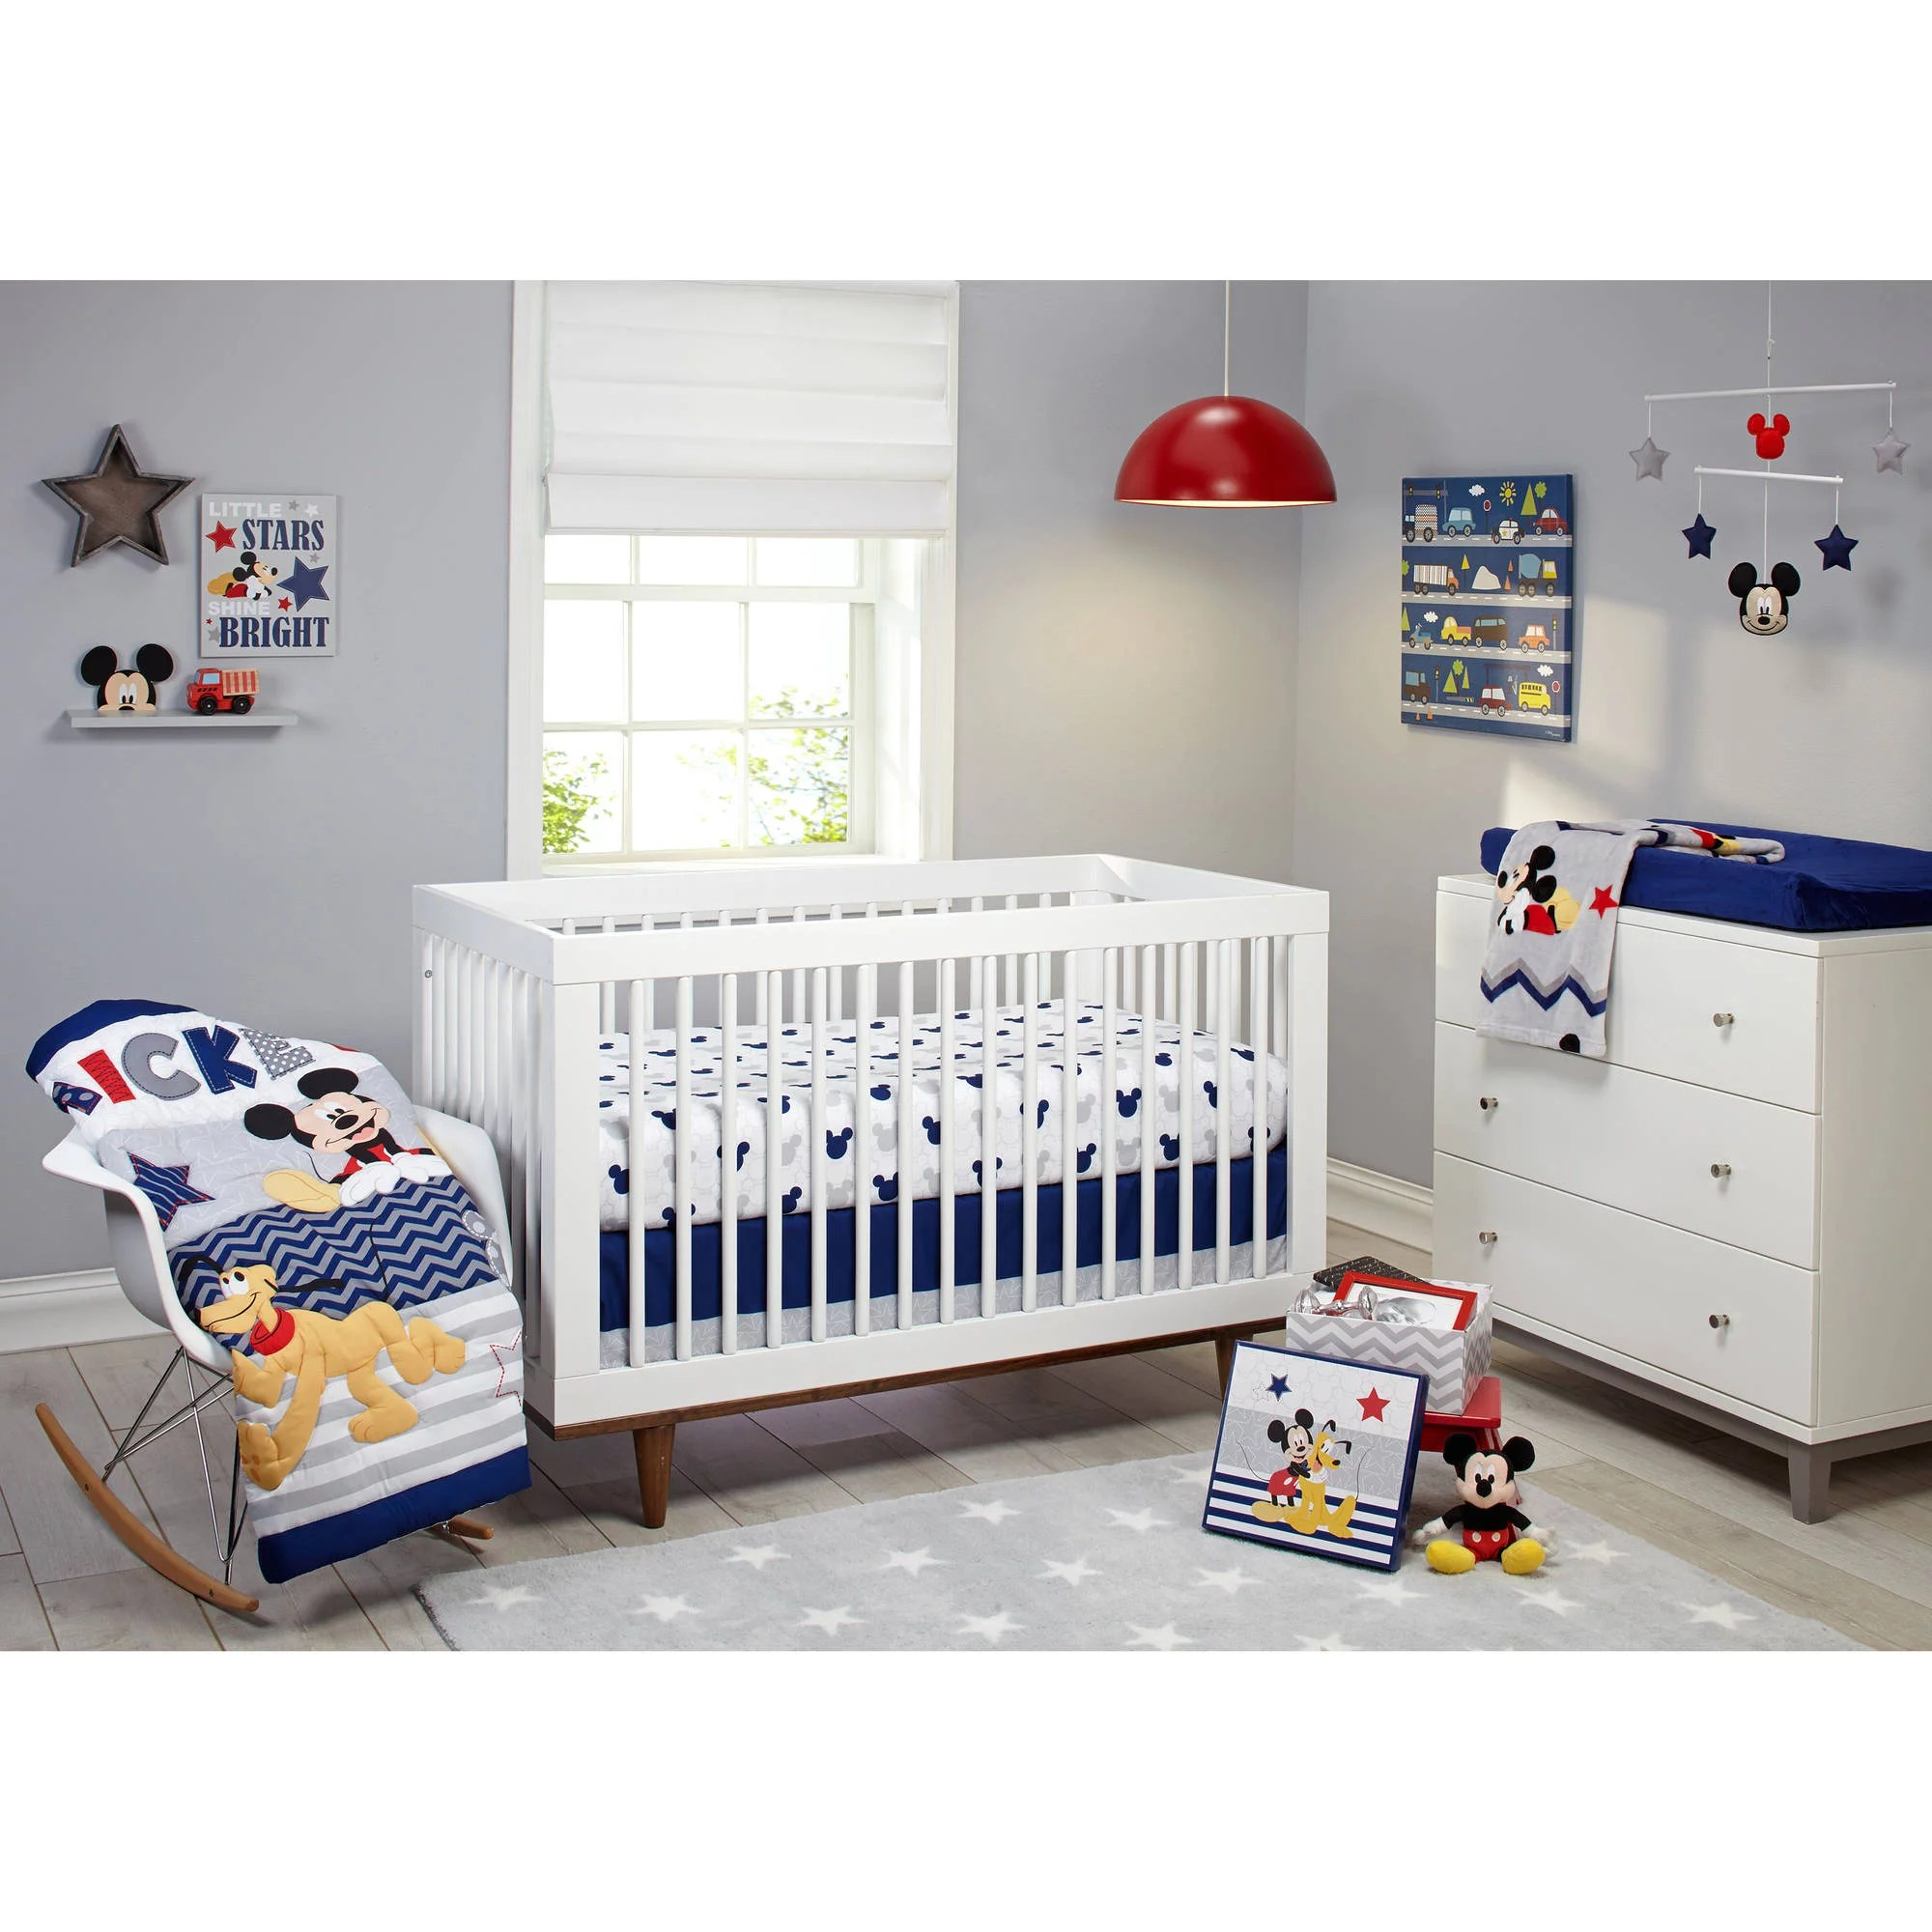 Full Crib Bedding Sets Disney Let S Go Mickey Ii 4 Piece Crib Bedding Set